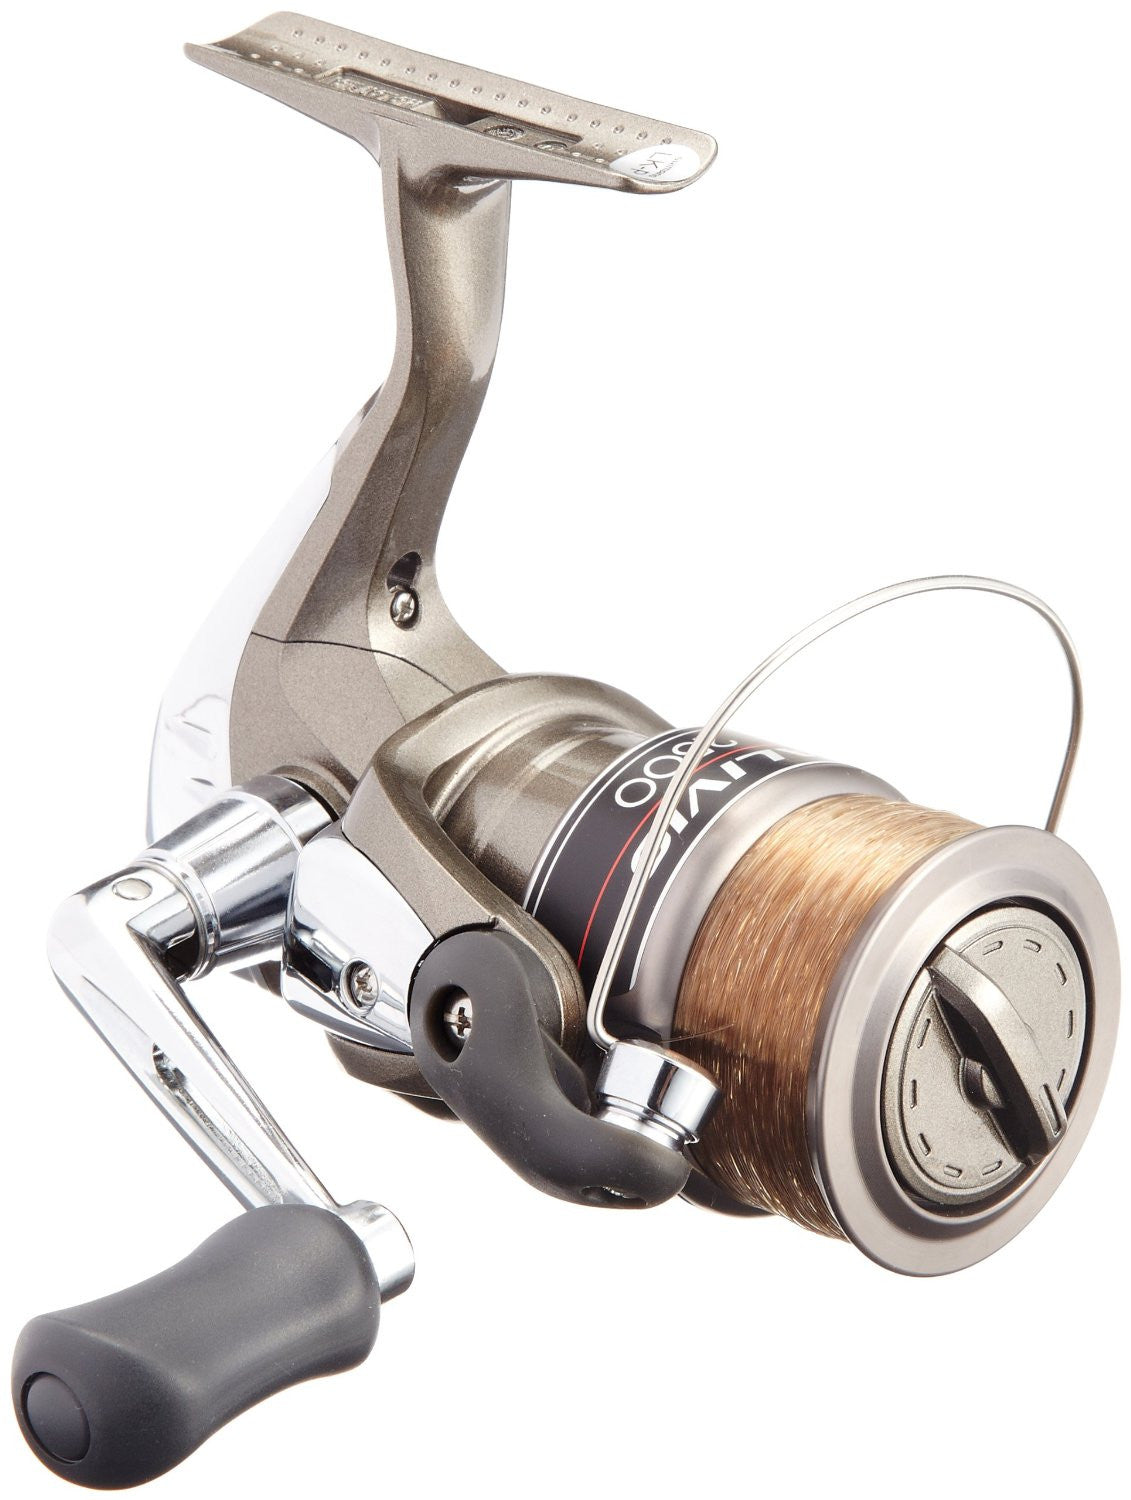 SHIMANO ALIVIO 2500 No. 3 yarn with / 027726 / Spinning Reels